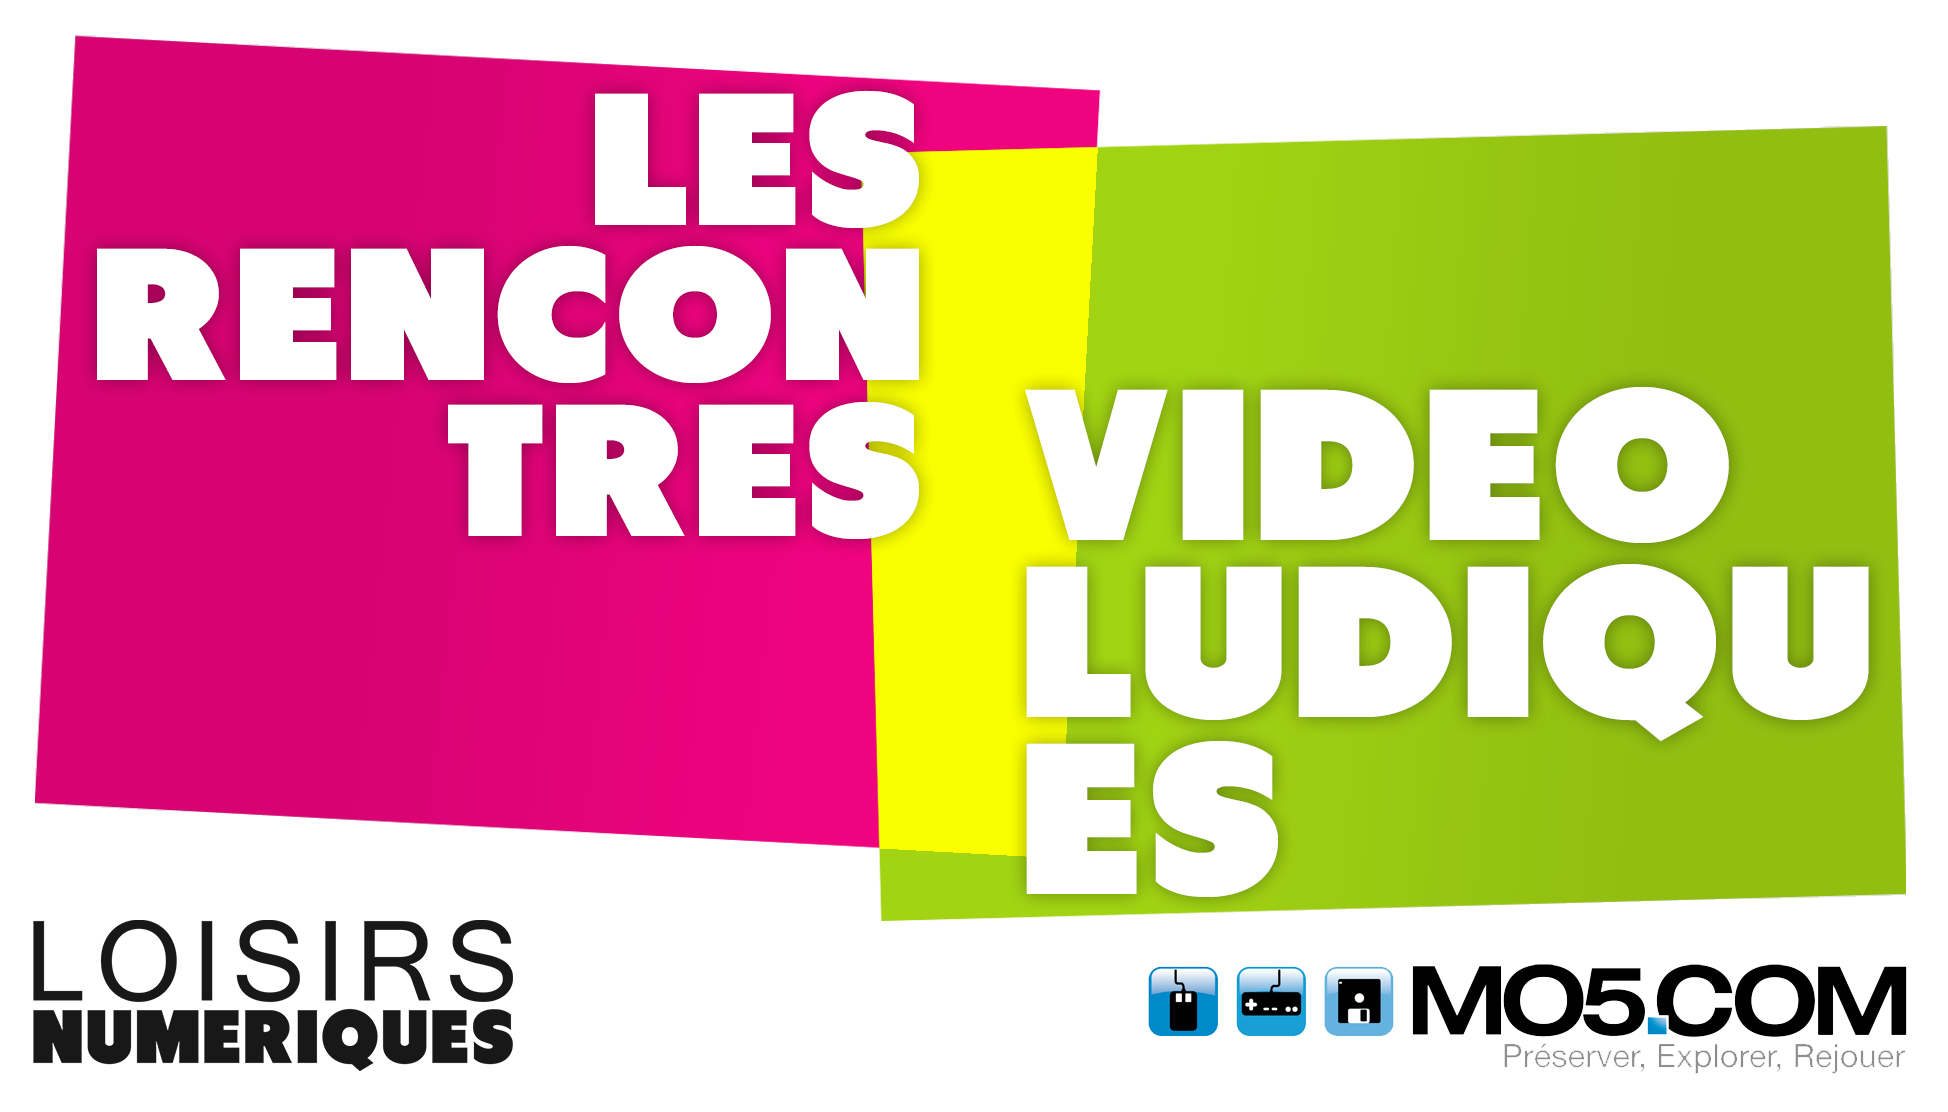 RVL logo jeu video